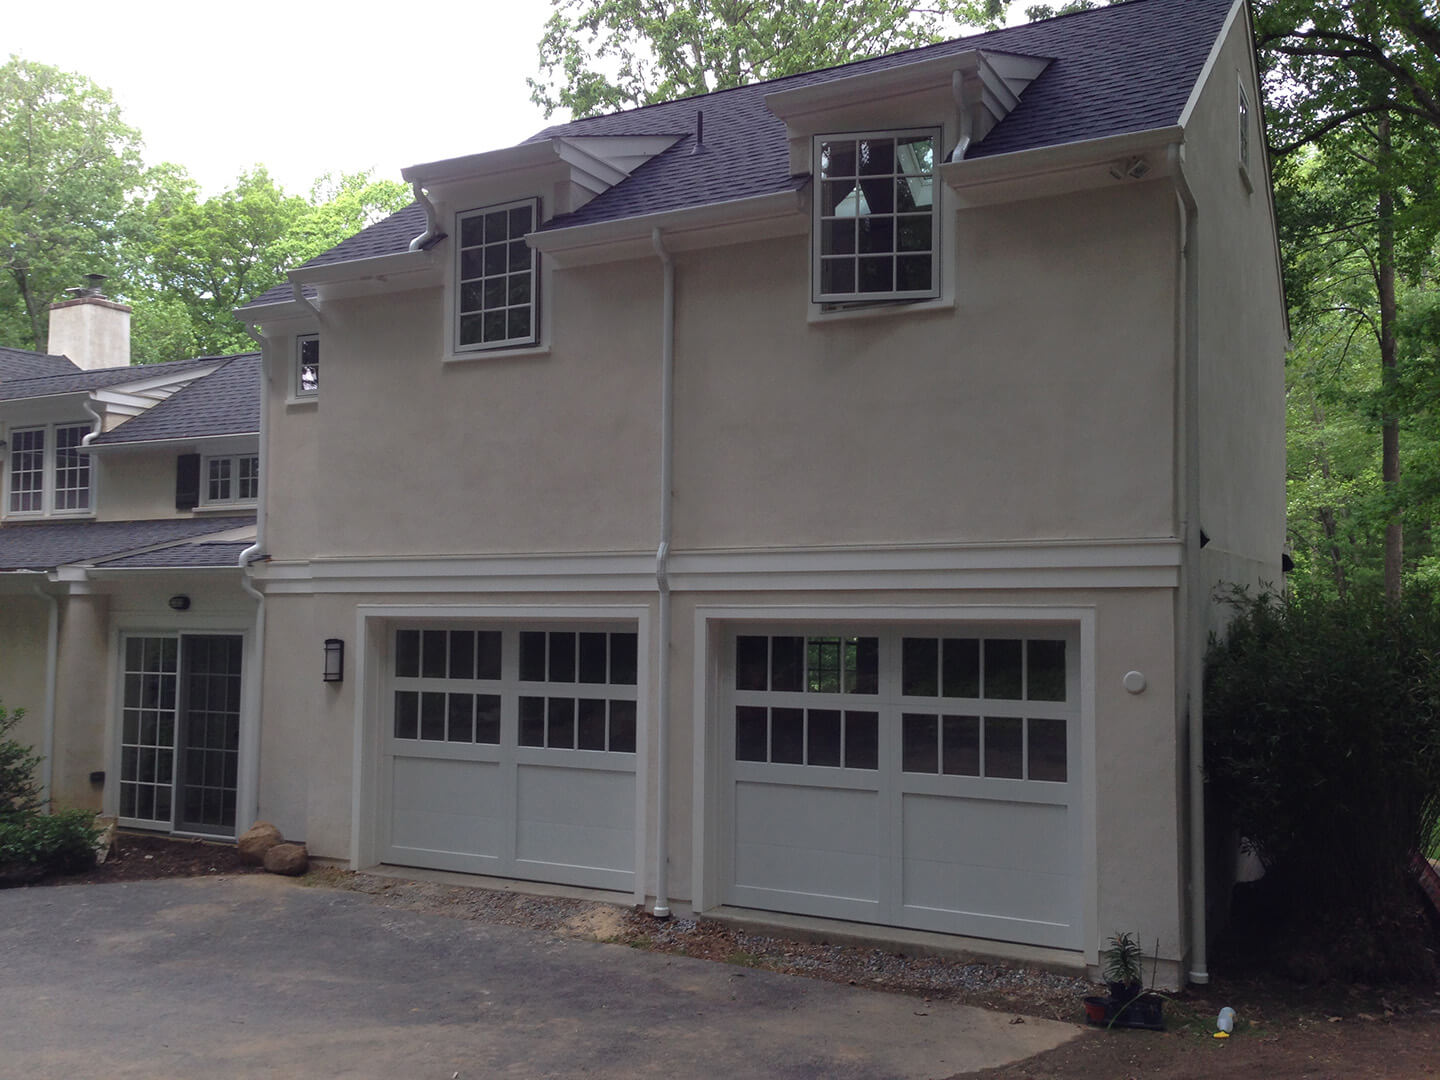 2 Car Garage Addition with Art Studio Above